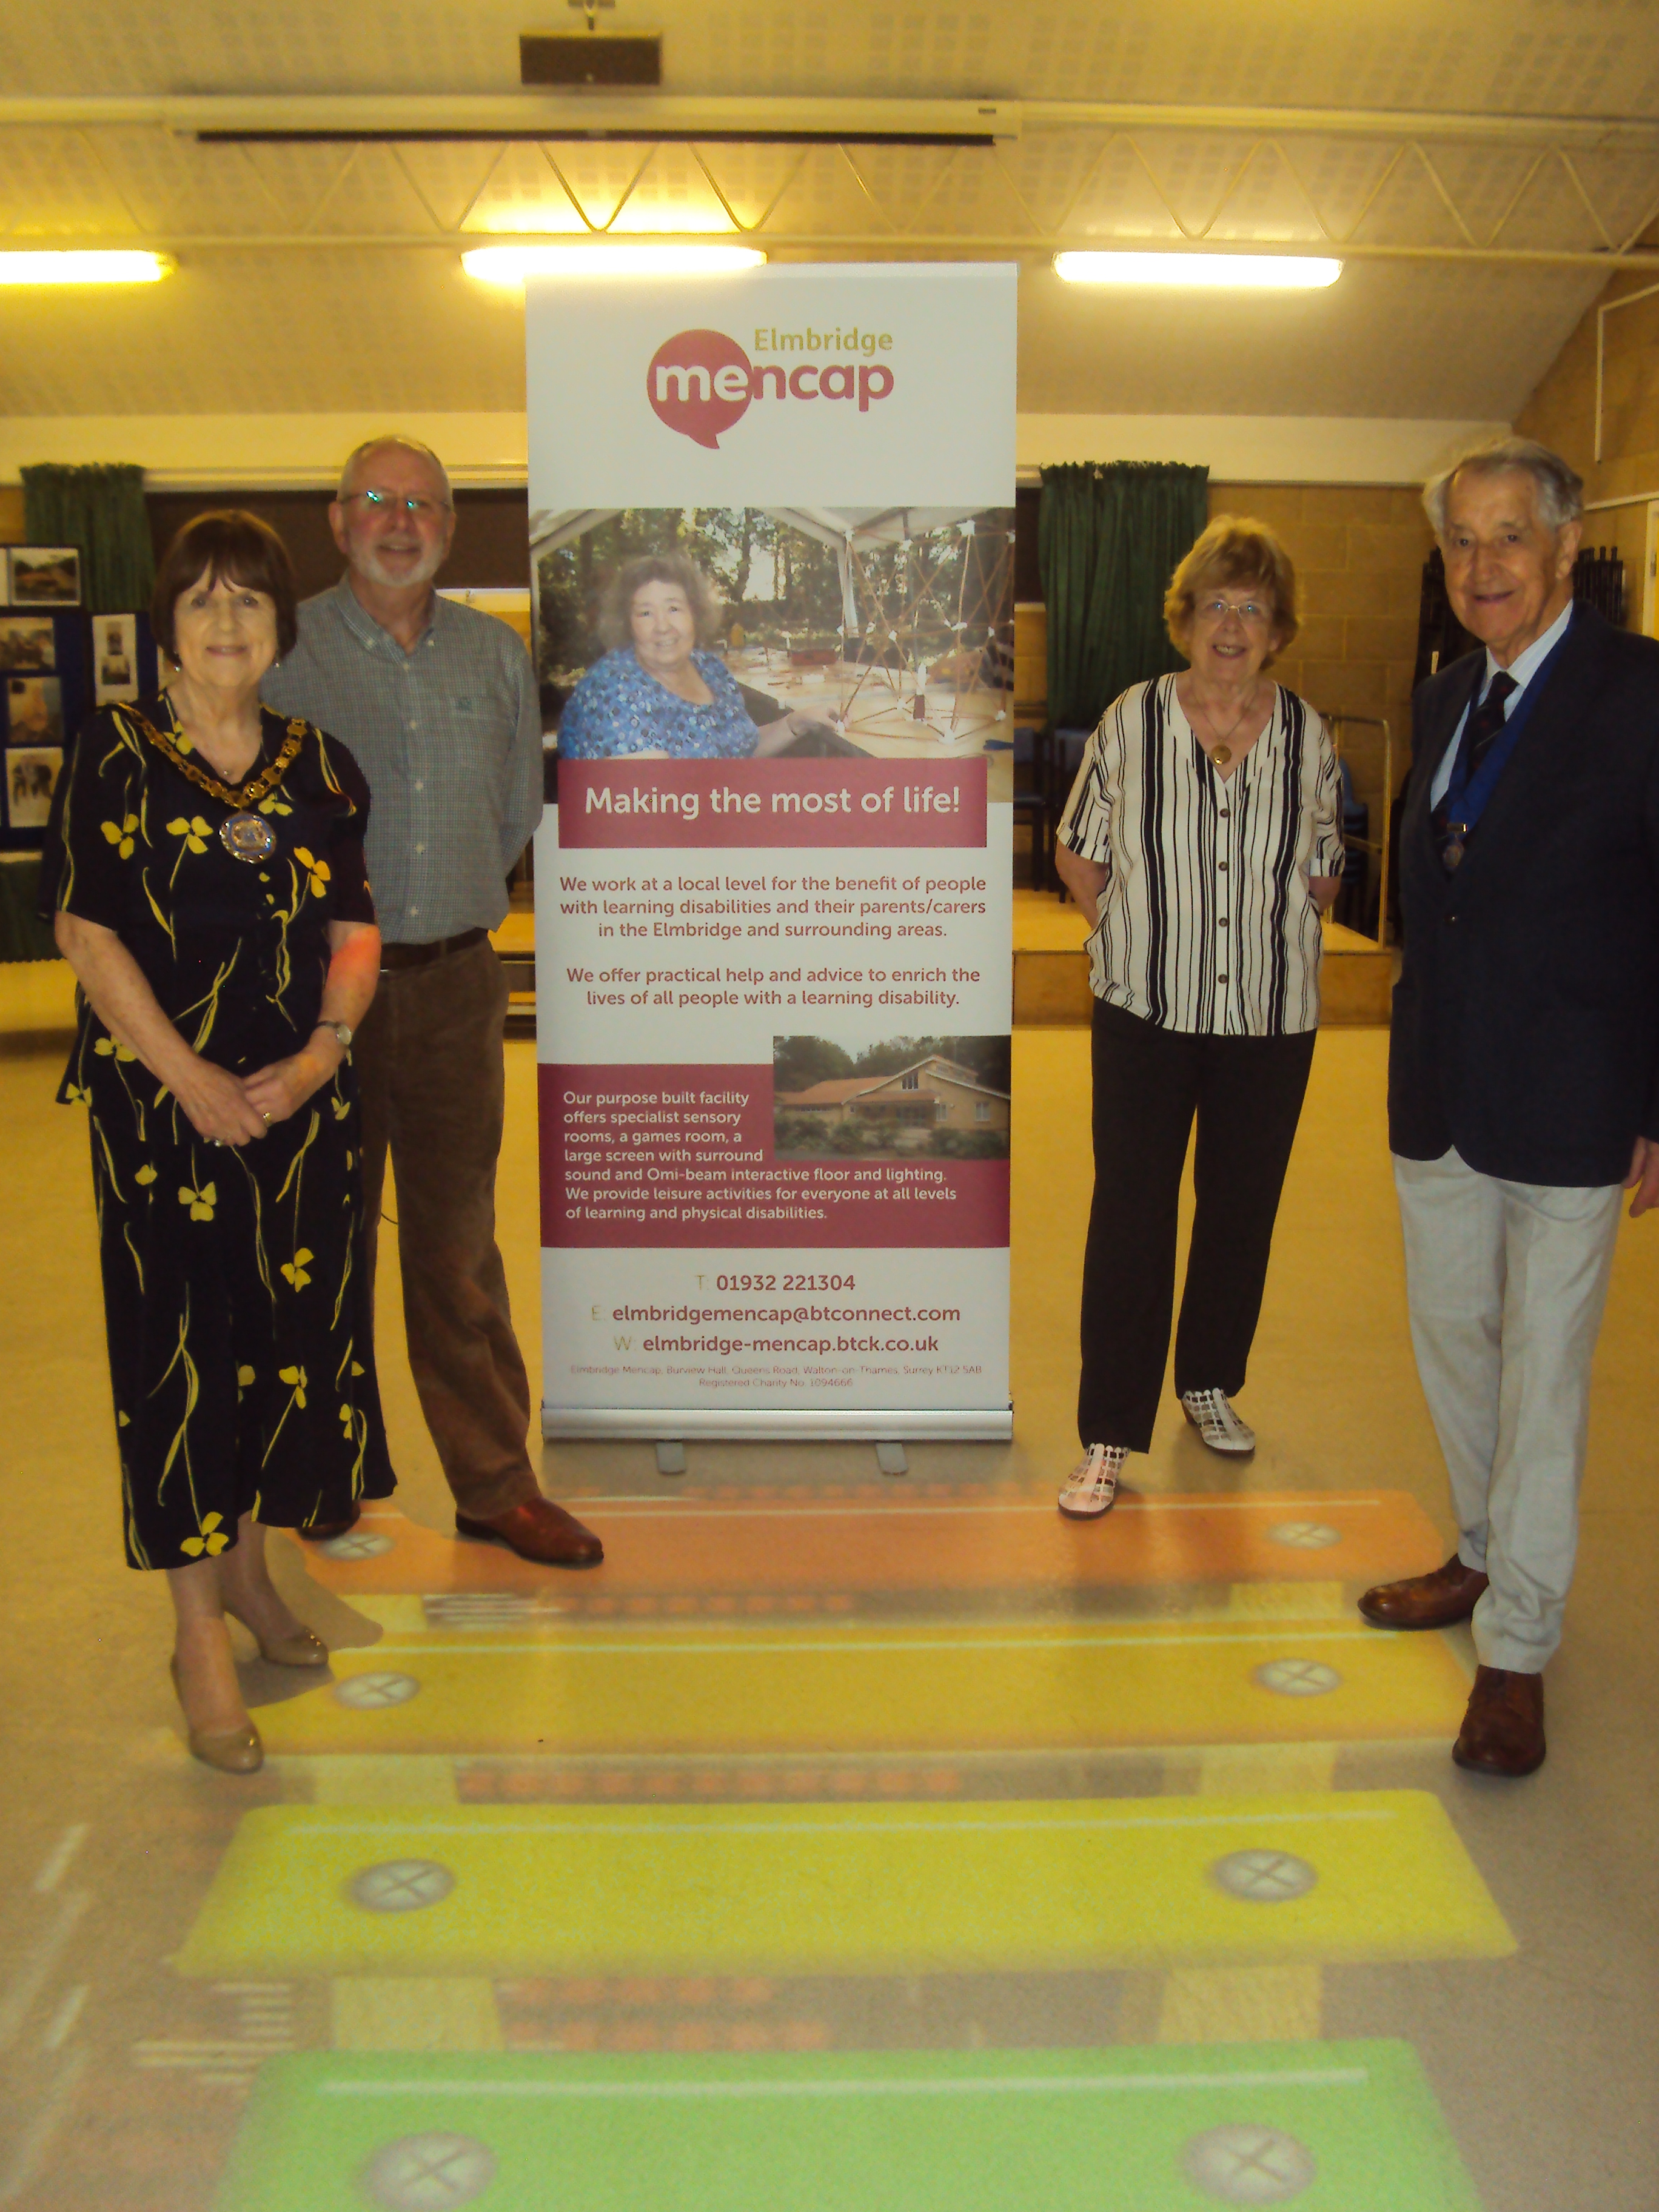 Amongst others the launch was attended by representatives from local businesses, Sarah Selvanathan, Deputy Chief Executive of Elmbridge Borough Council, Jean Rigden, Founder of Elmbridge Mencap, John Reeves, Chairman of Trustees and volunteers from Elmbridge Mencap and Elmbridge Councillors